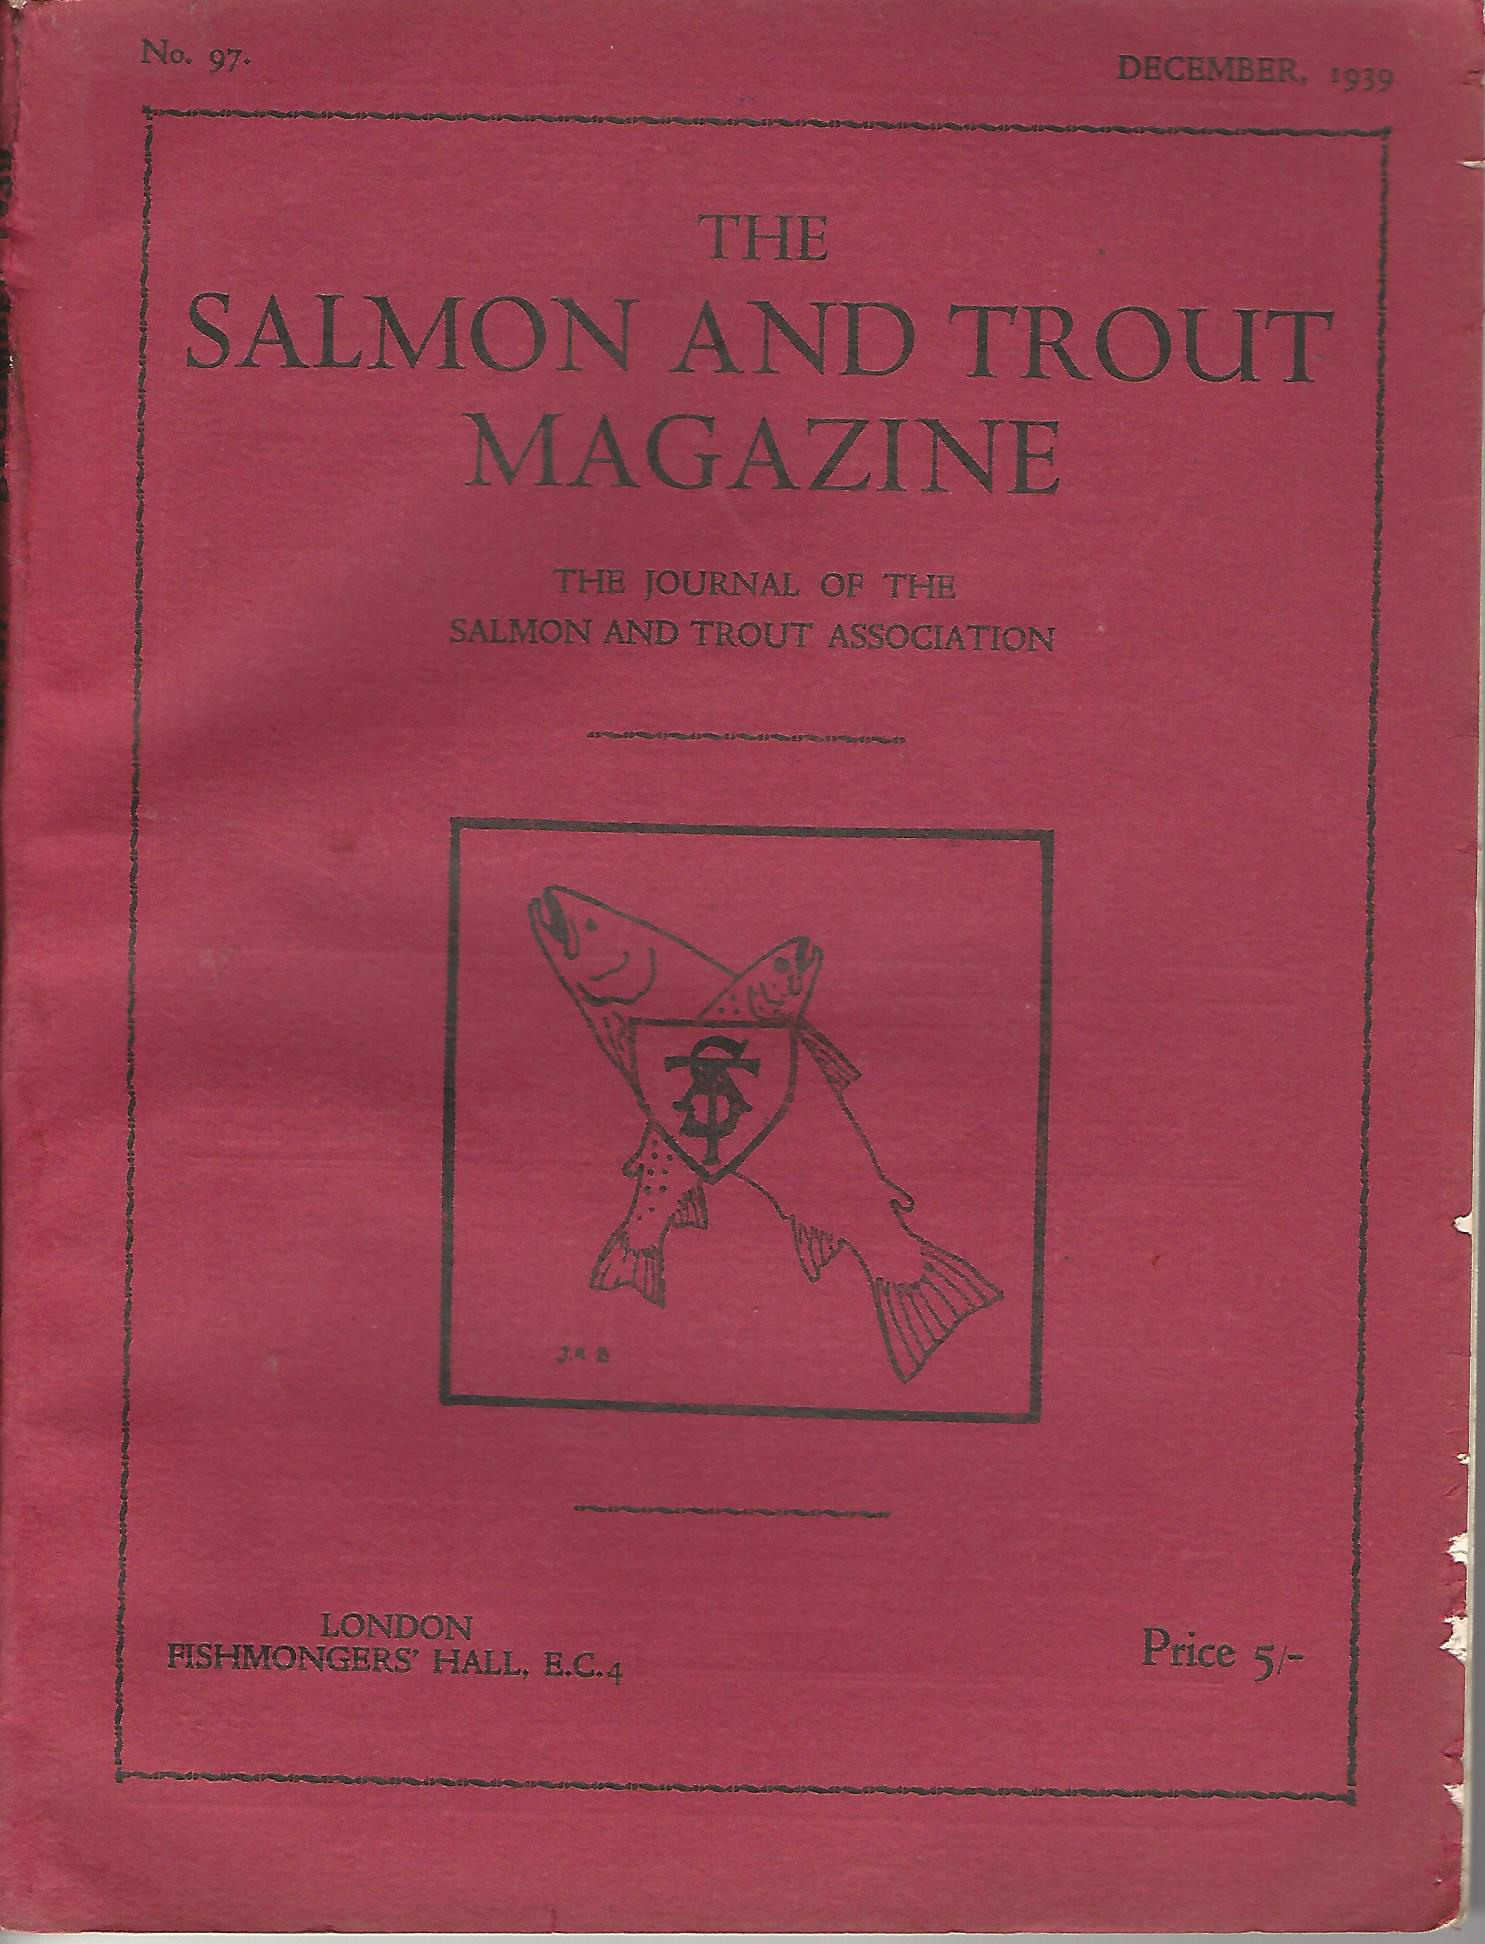 Image for The Salmon and Trout Magazine. The Journal of the Salmon and Trout Association. No. 97.